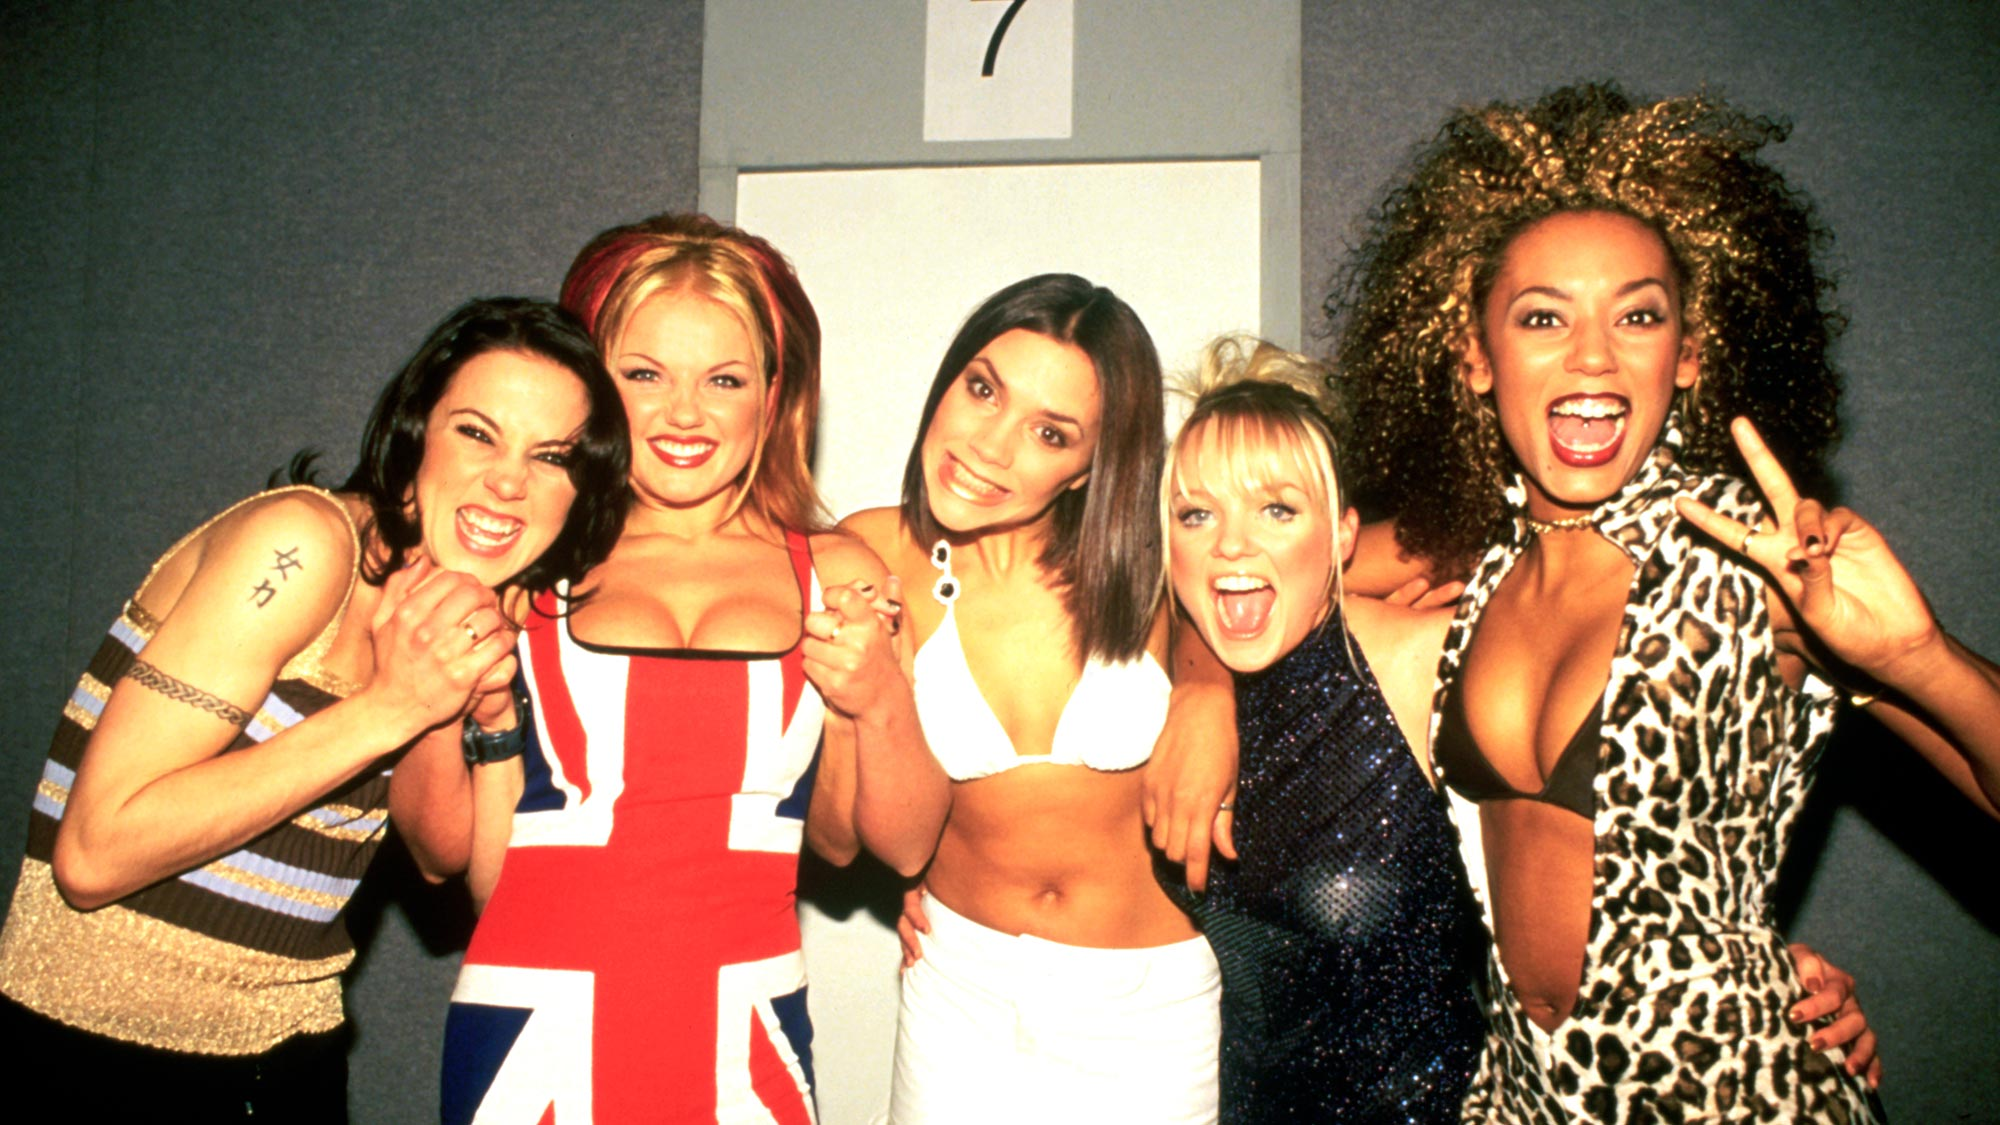 The story behind that iconic Posh Spice outfit